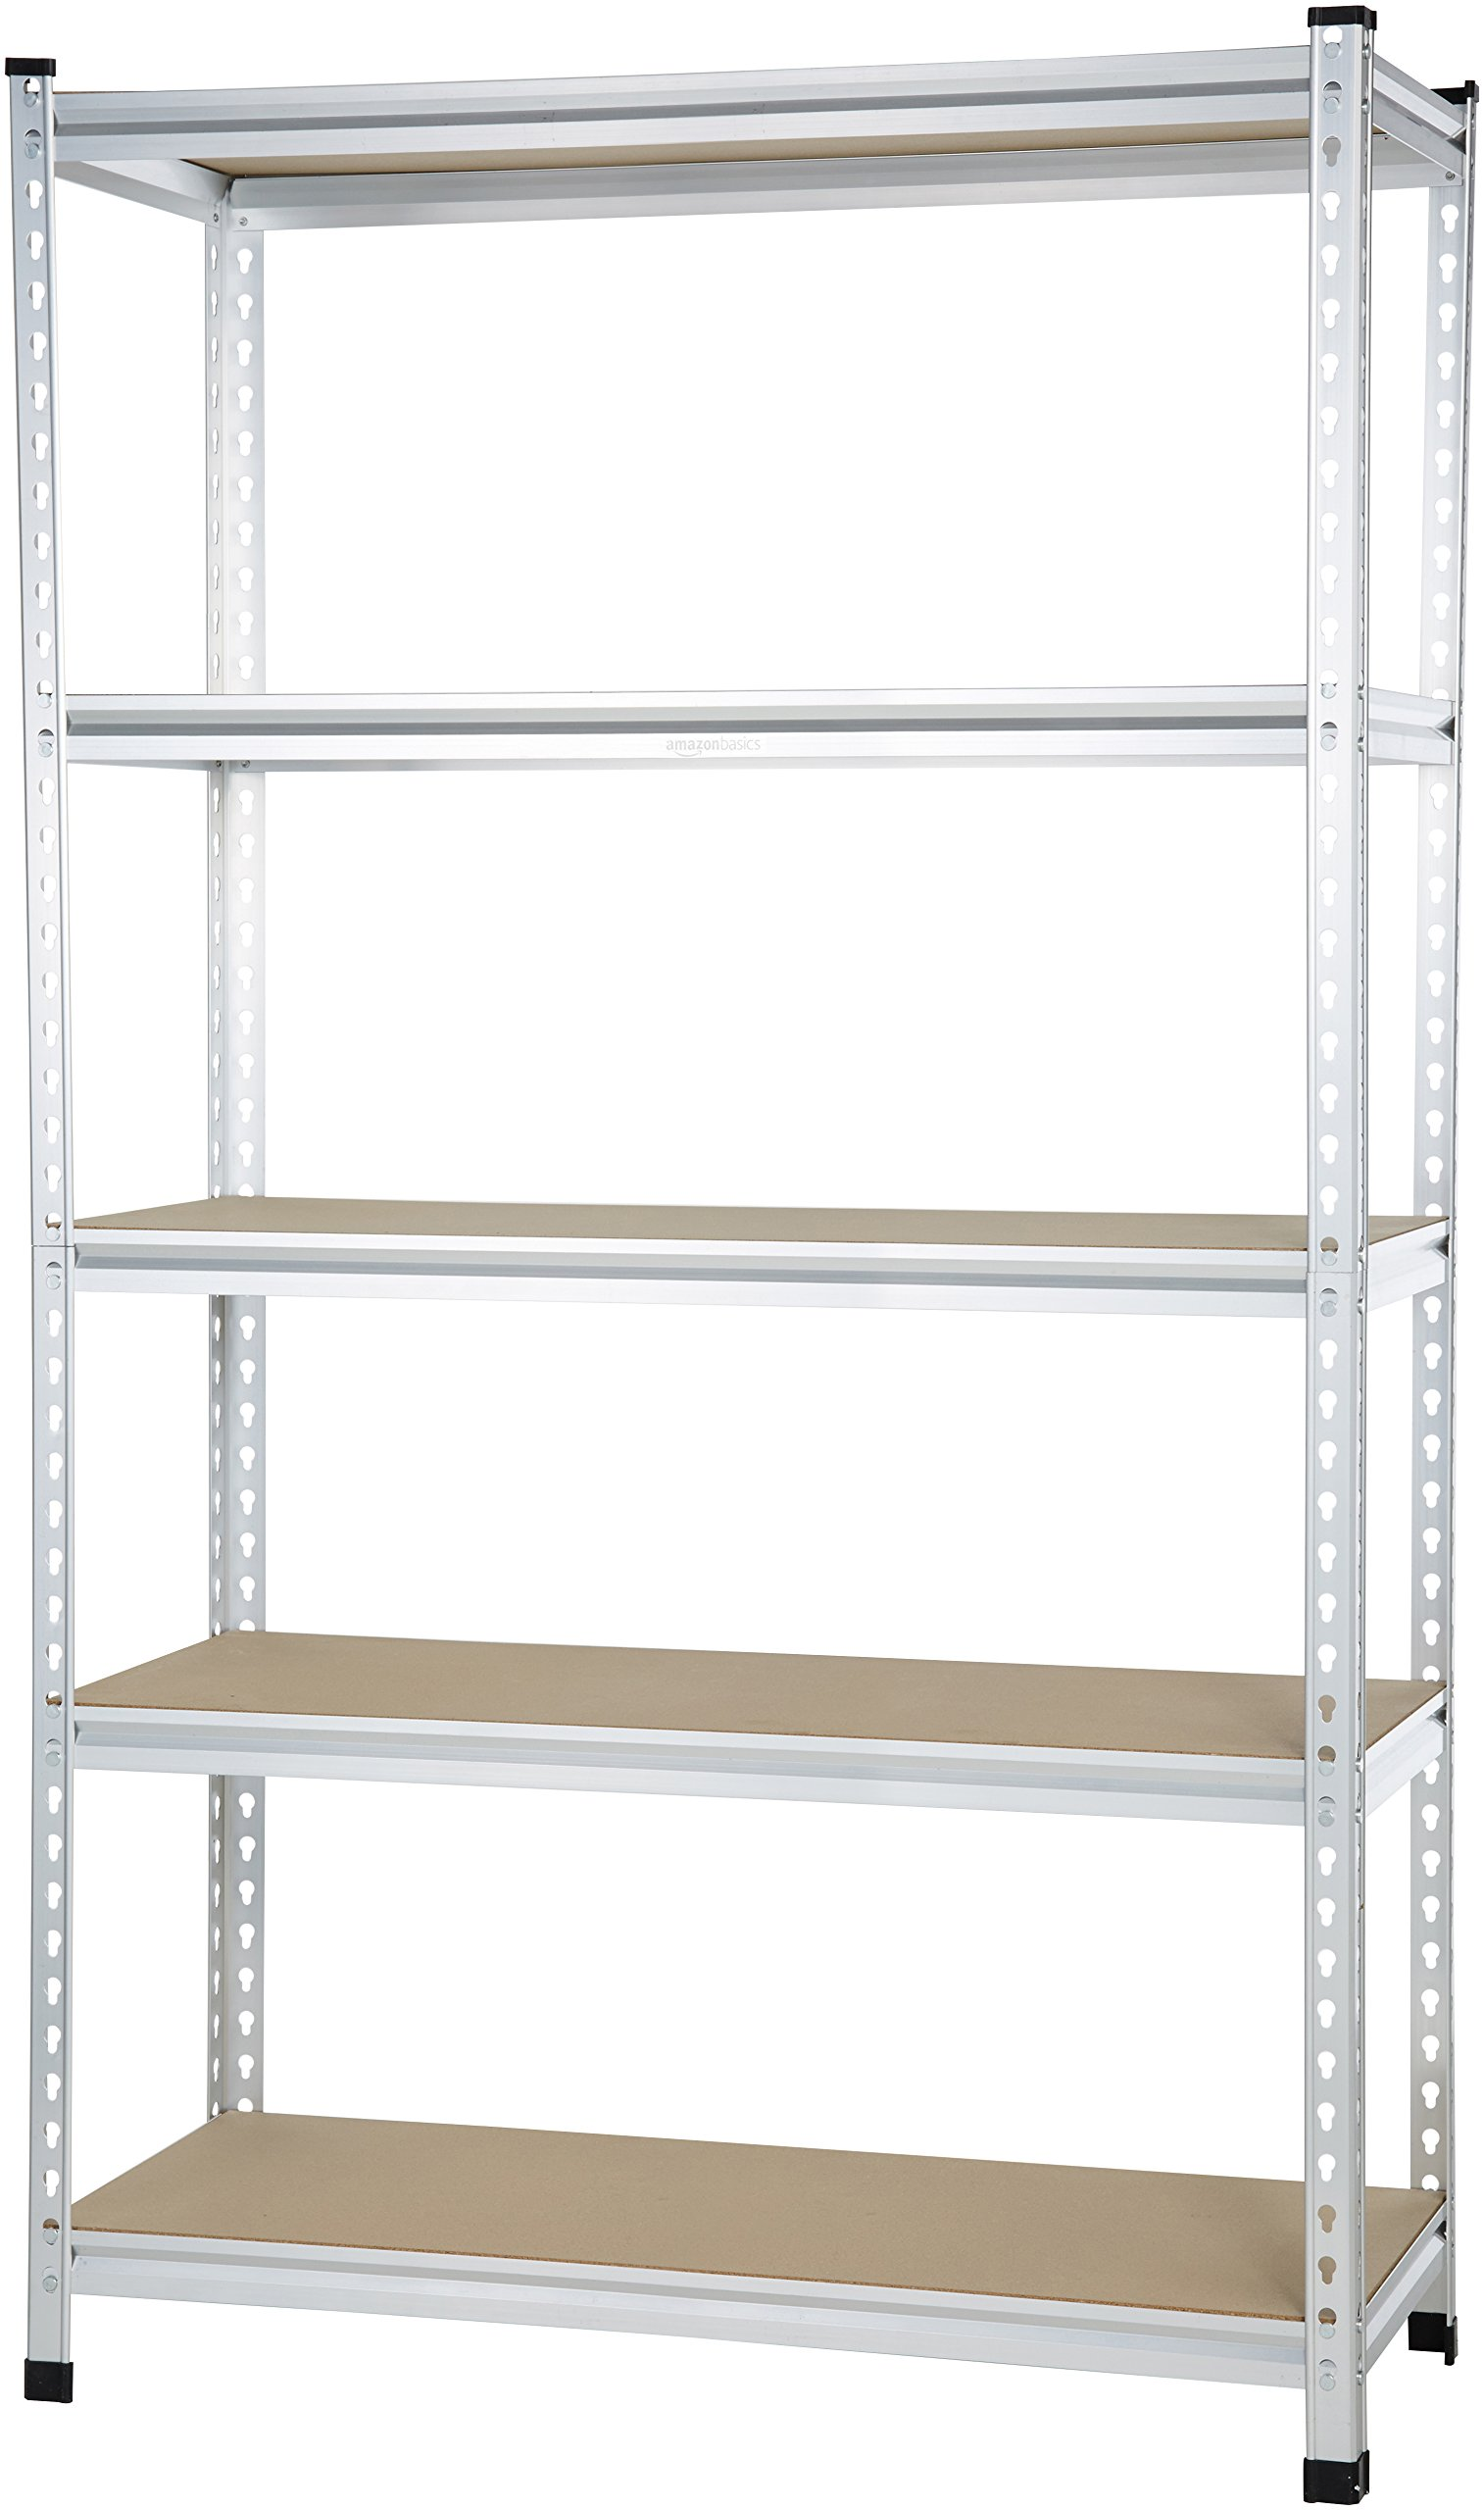 AmazonBasics Medium Duty Shelving Double-Post Press Board Shelf - 48 x 18 x 72